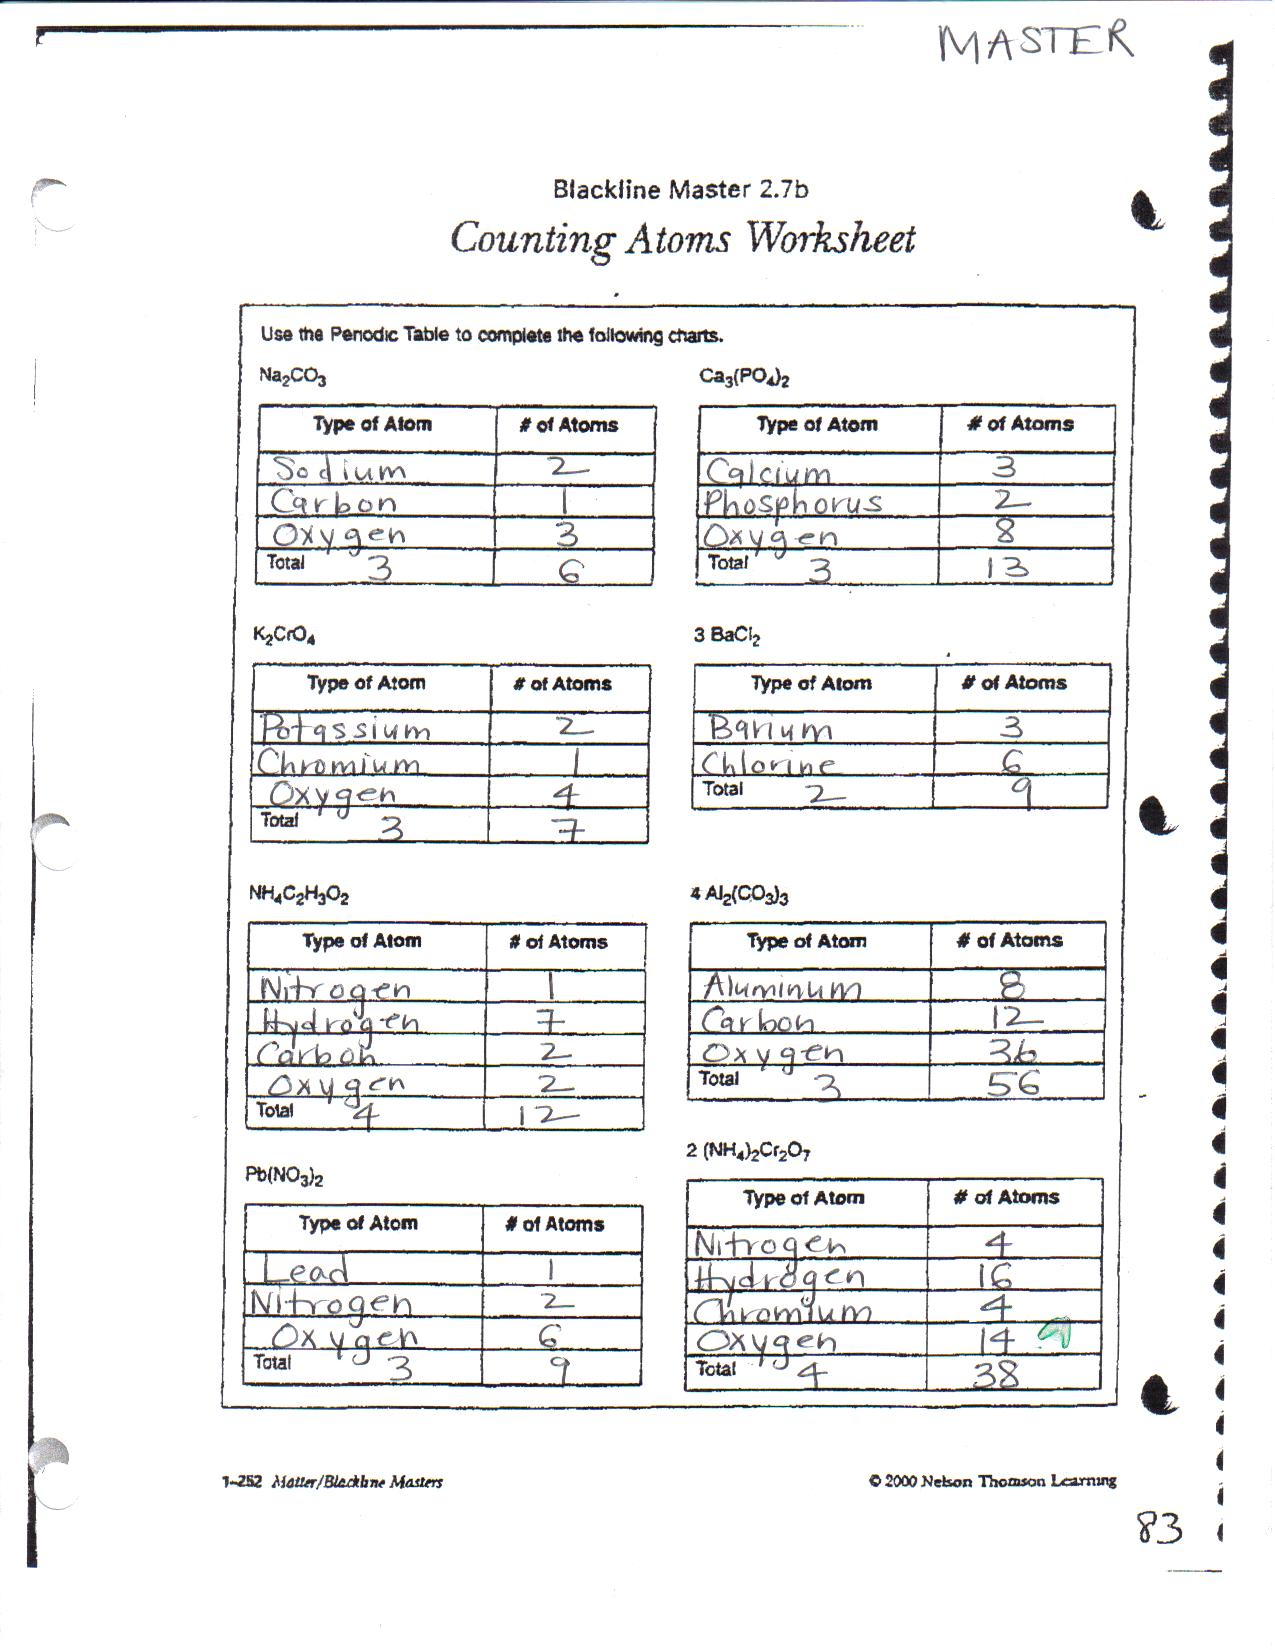 New 18 Counting Atoms In Compounds Worksheet With Answers